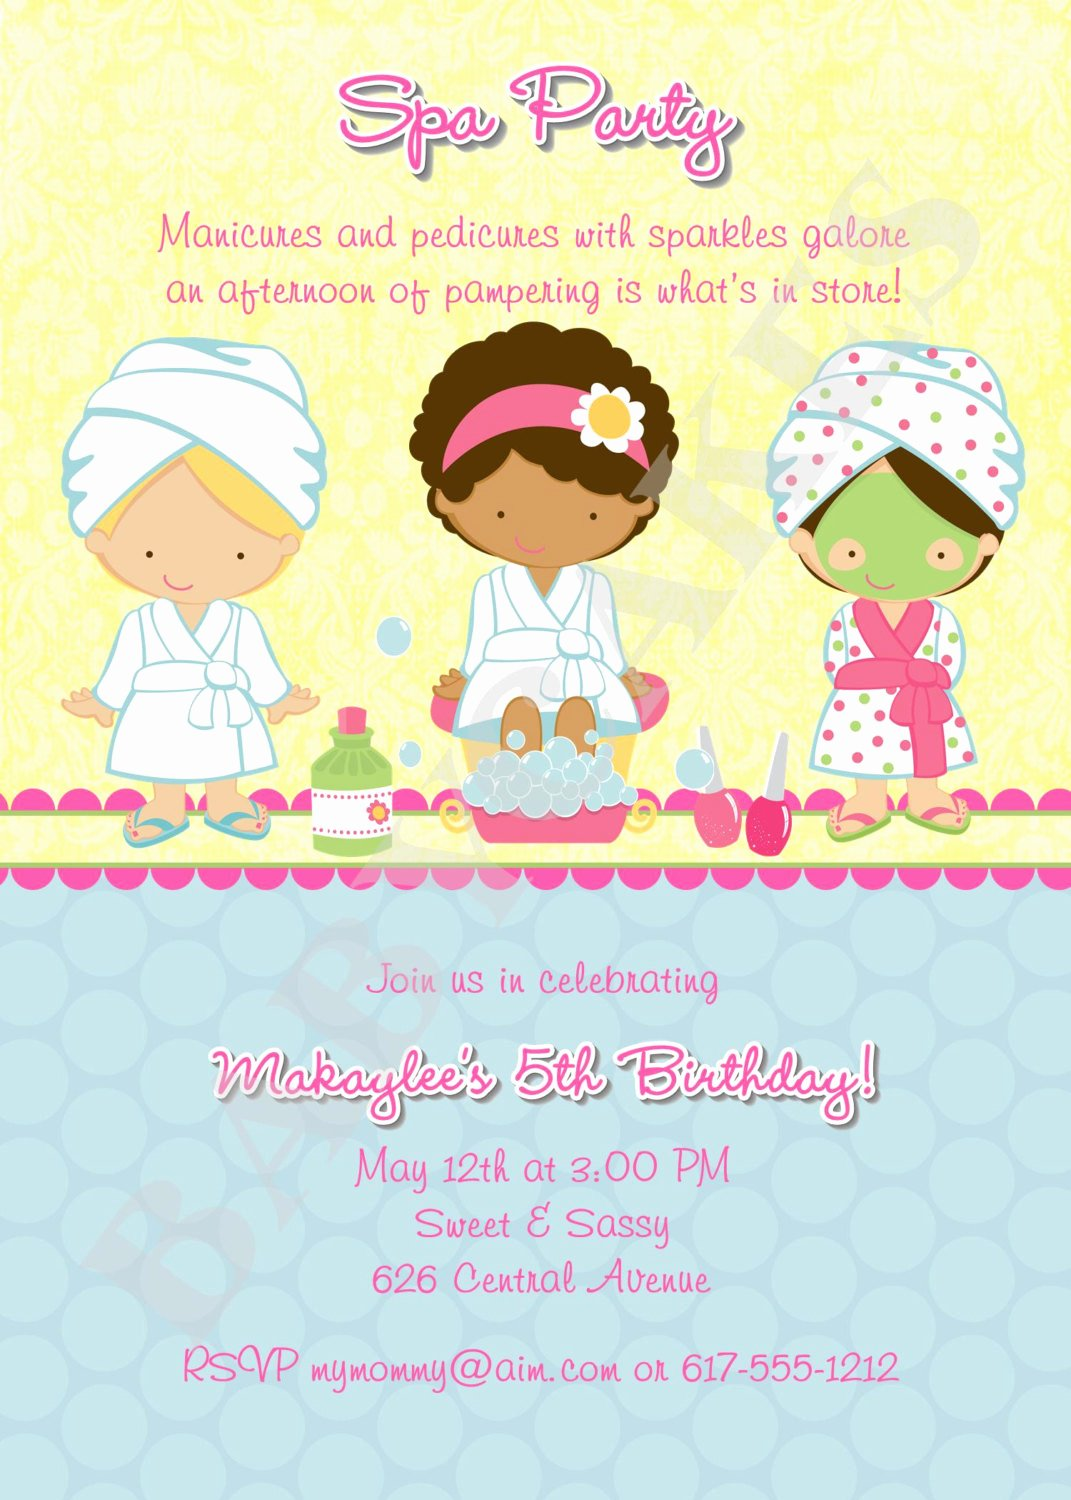 Spa Birthday Party Invitations Best Of Spa Party Birthday Invitation Diy Print Your Own